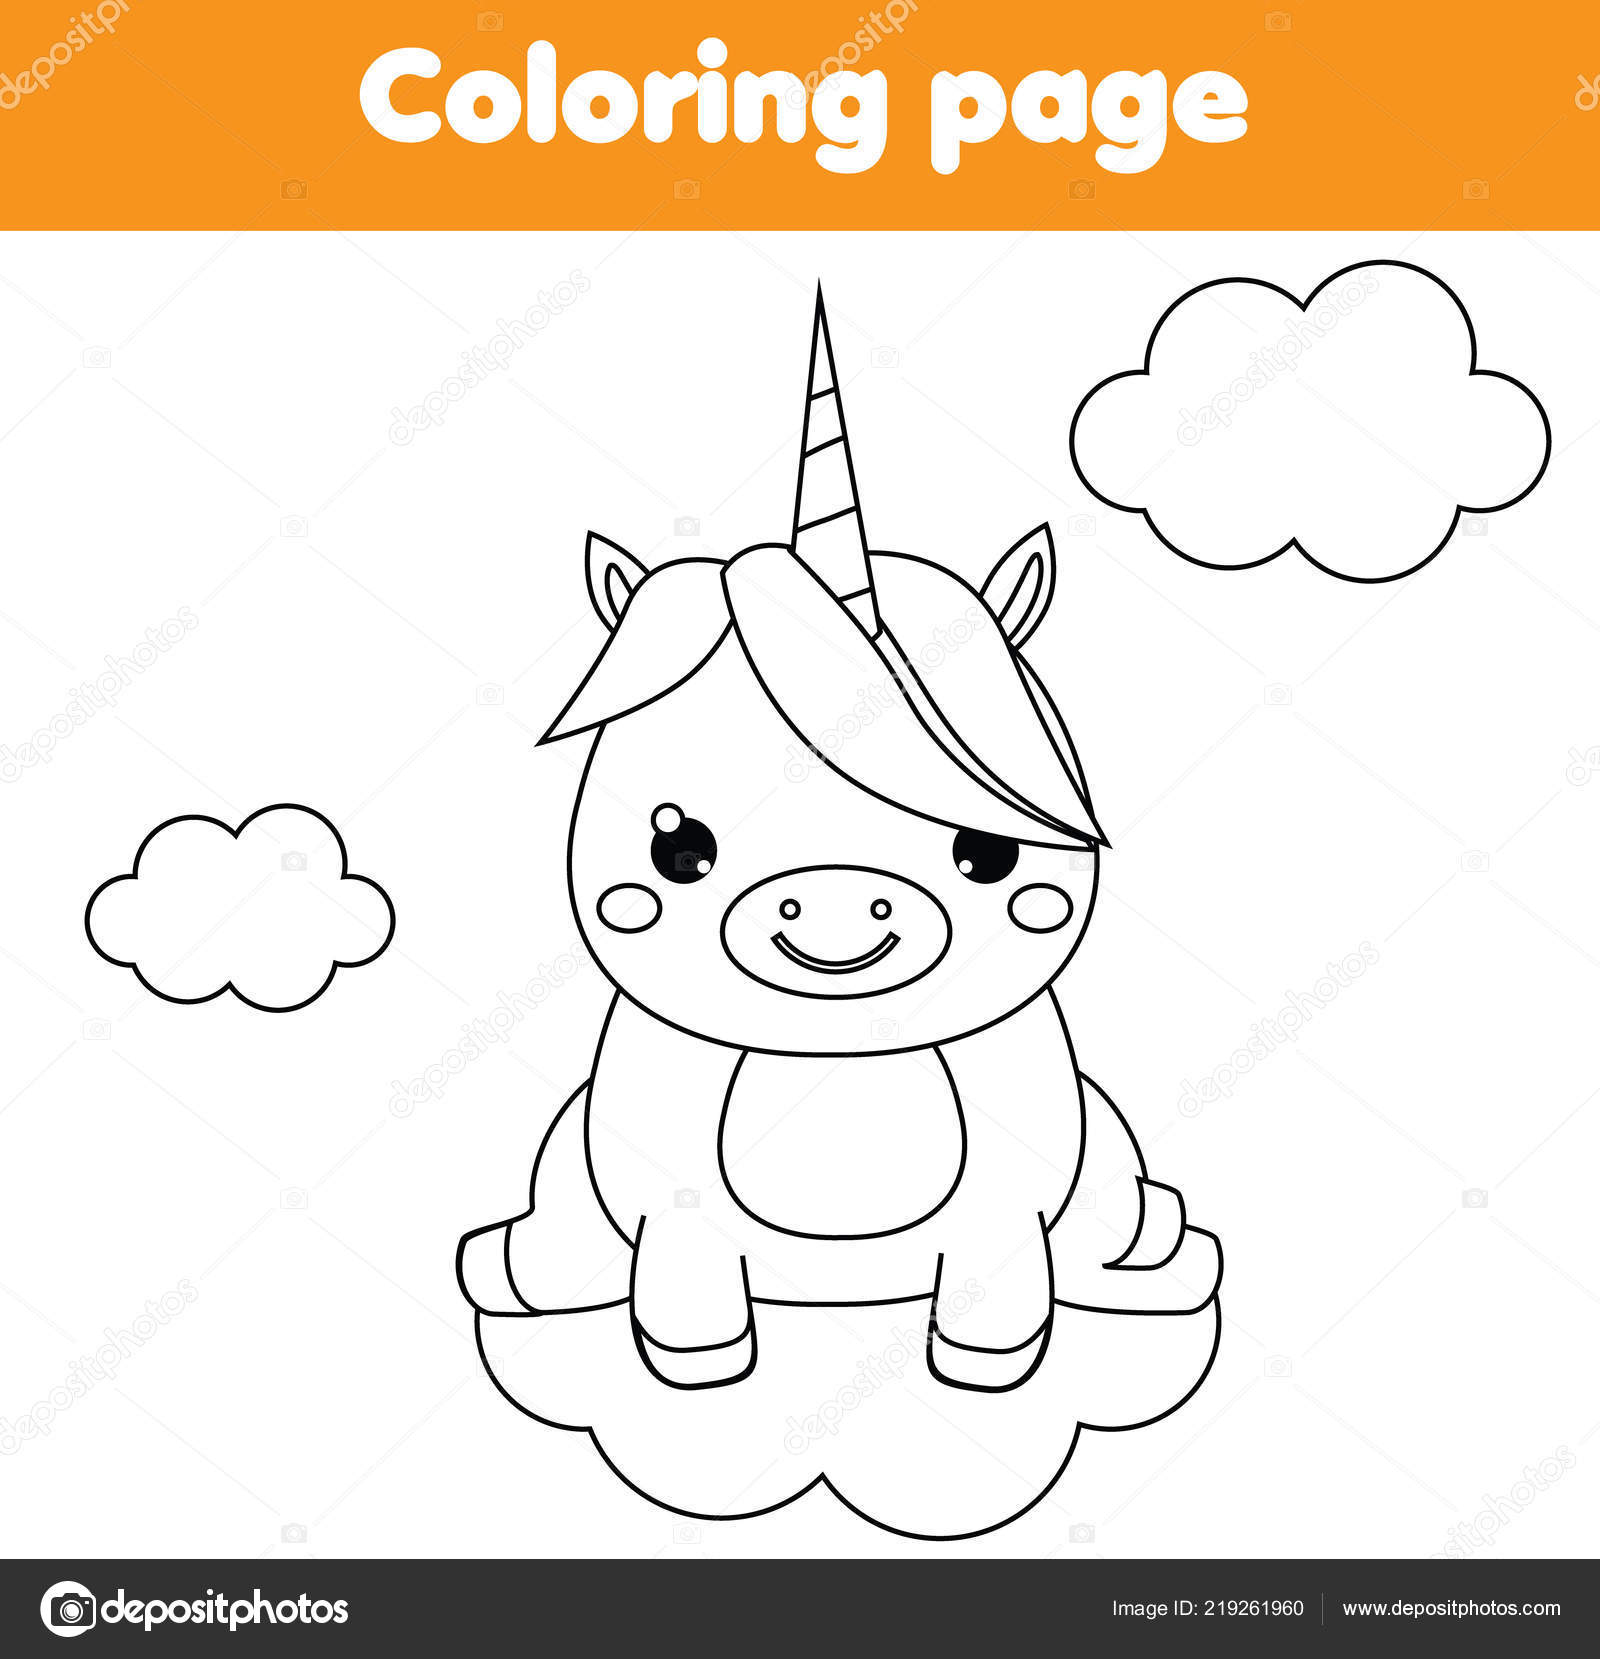 coloring pages : Free Printable Activity Pages For Kids ... | 1659x1600